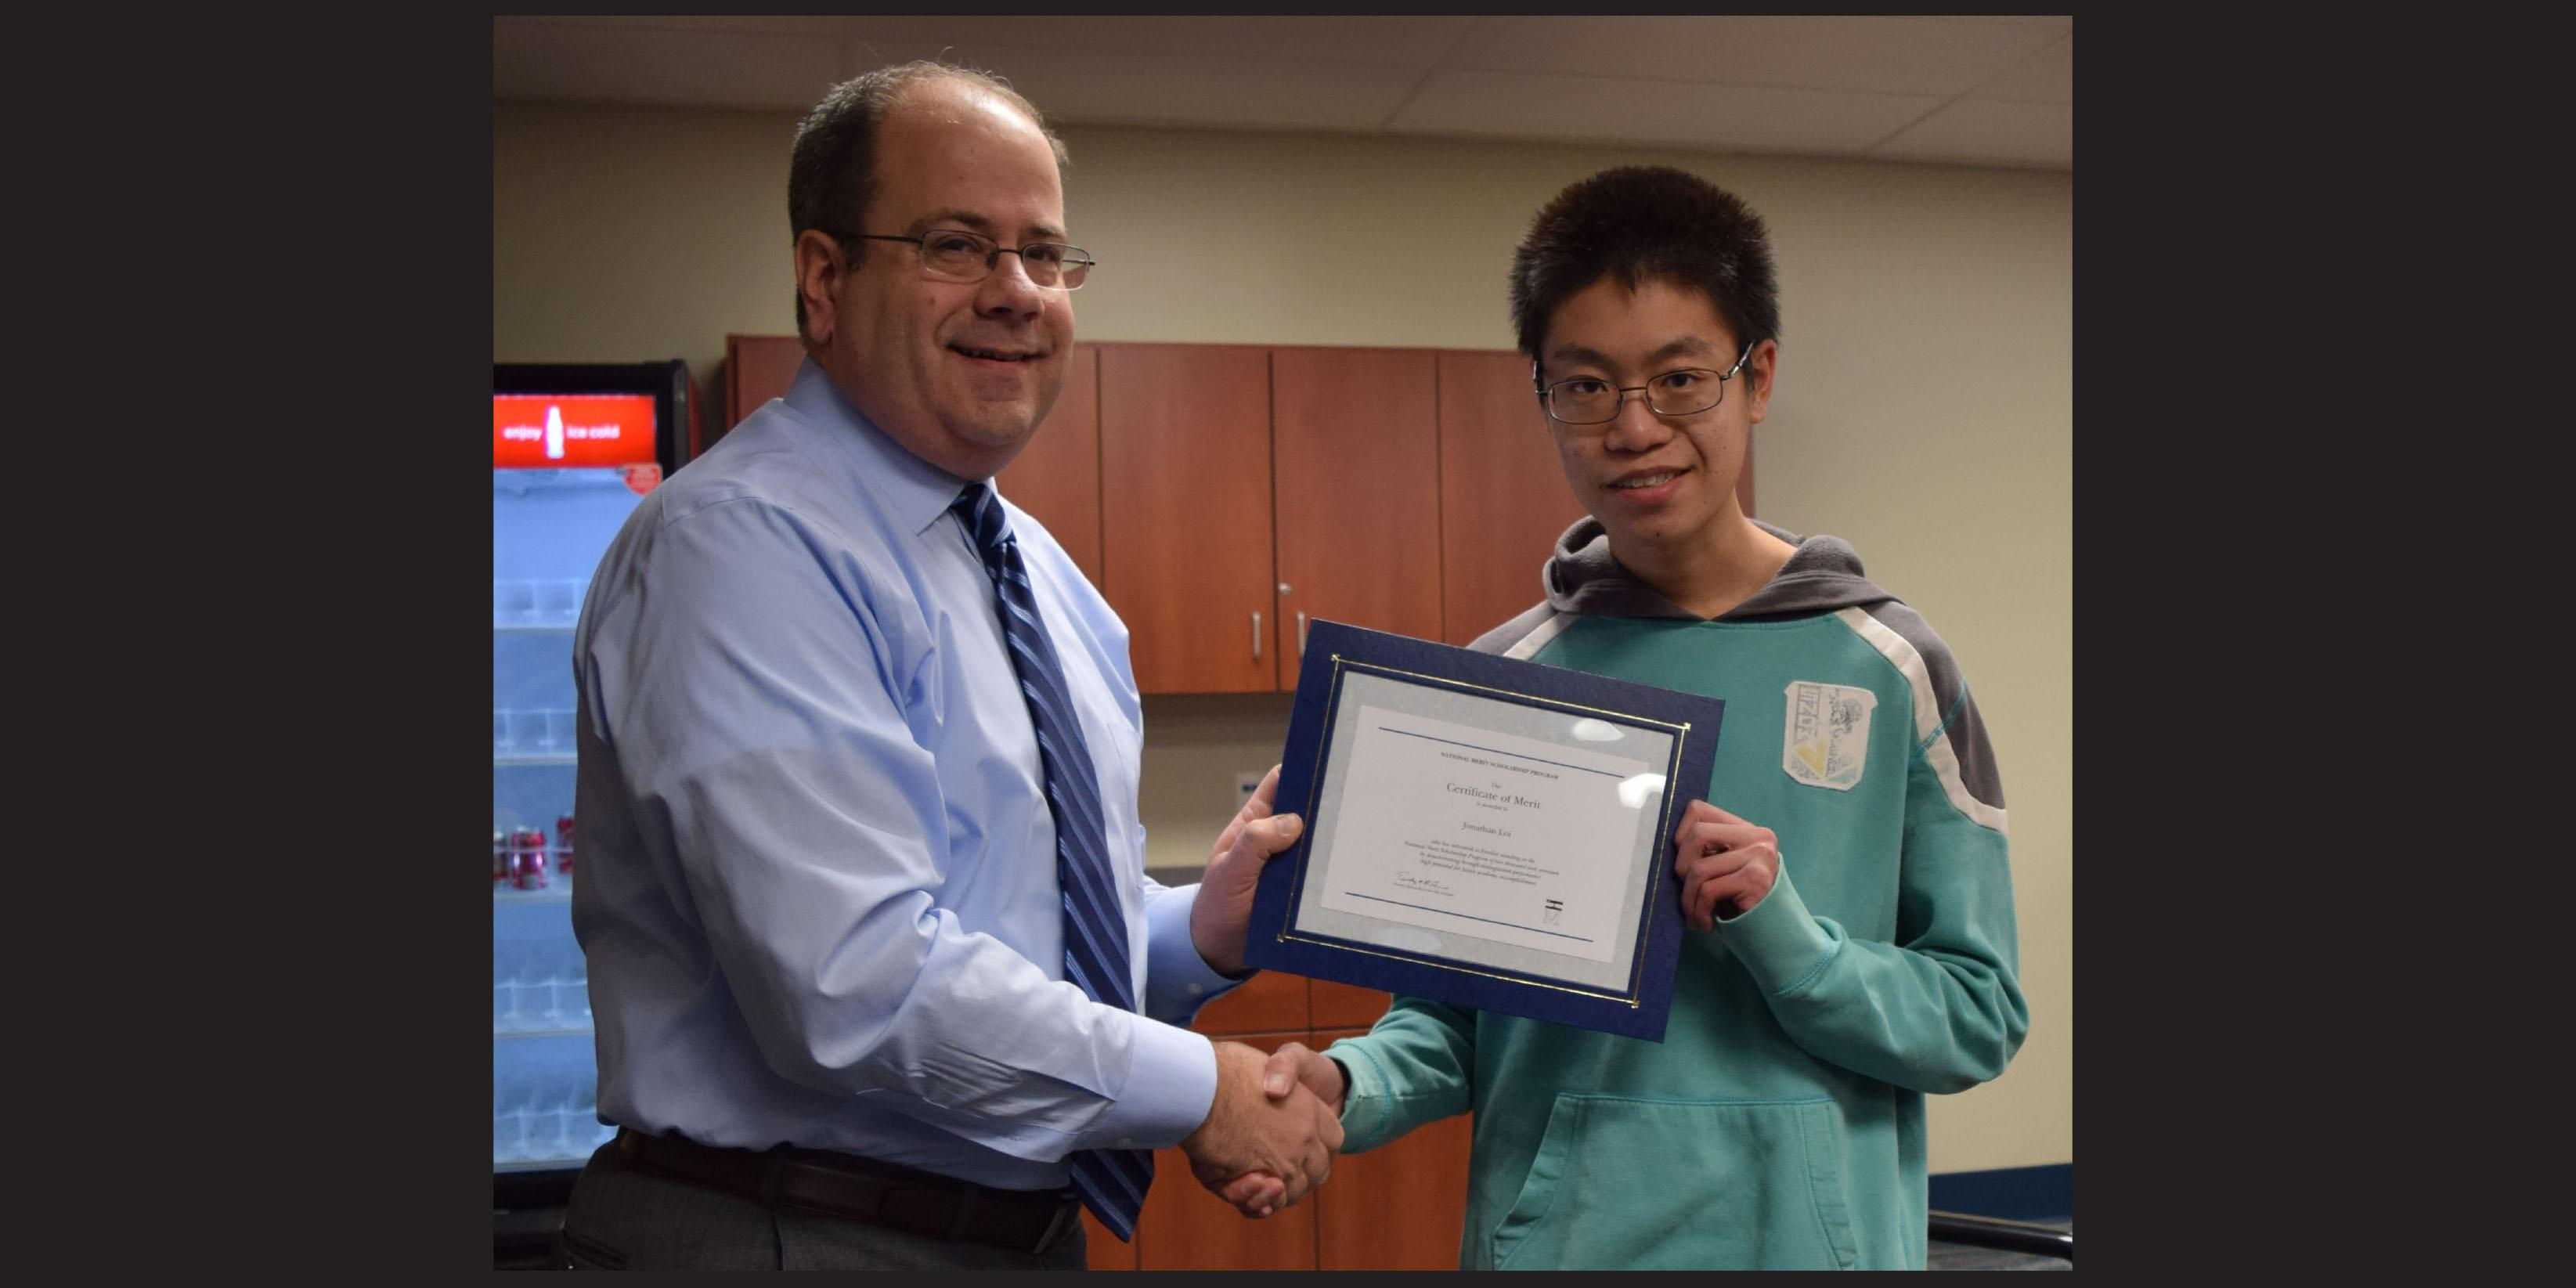 Addison Trail senior named as finalist in 2017 National Merit Scholarship Program